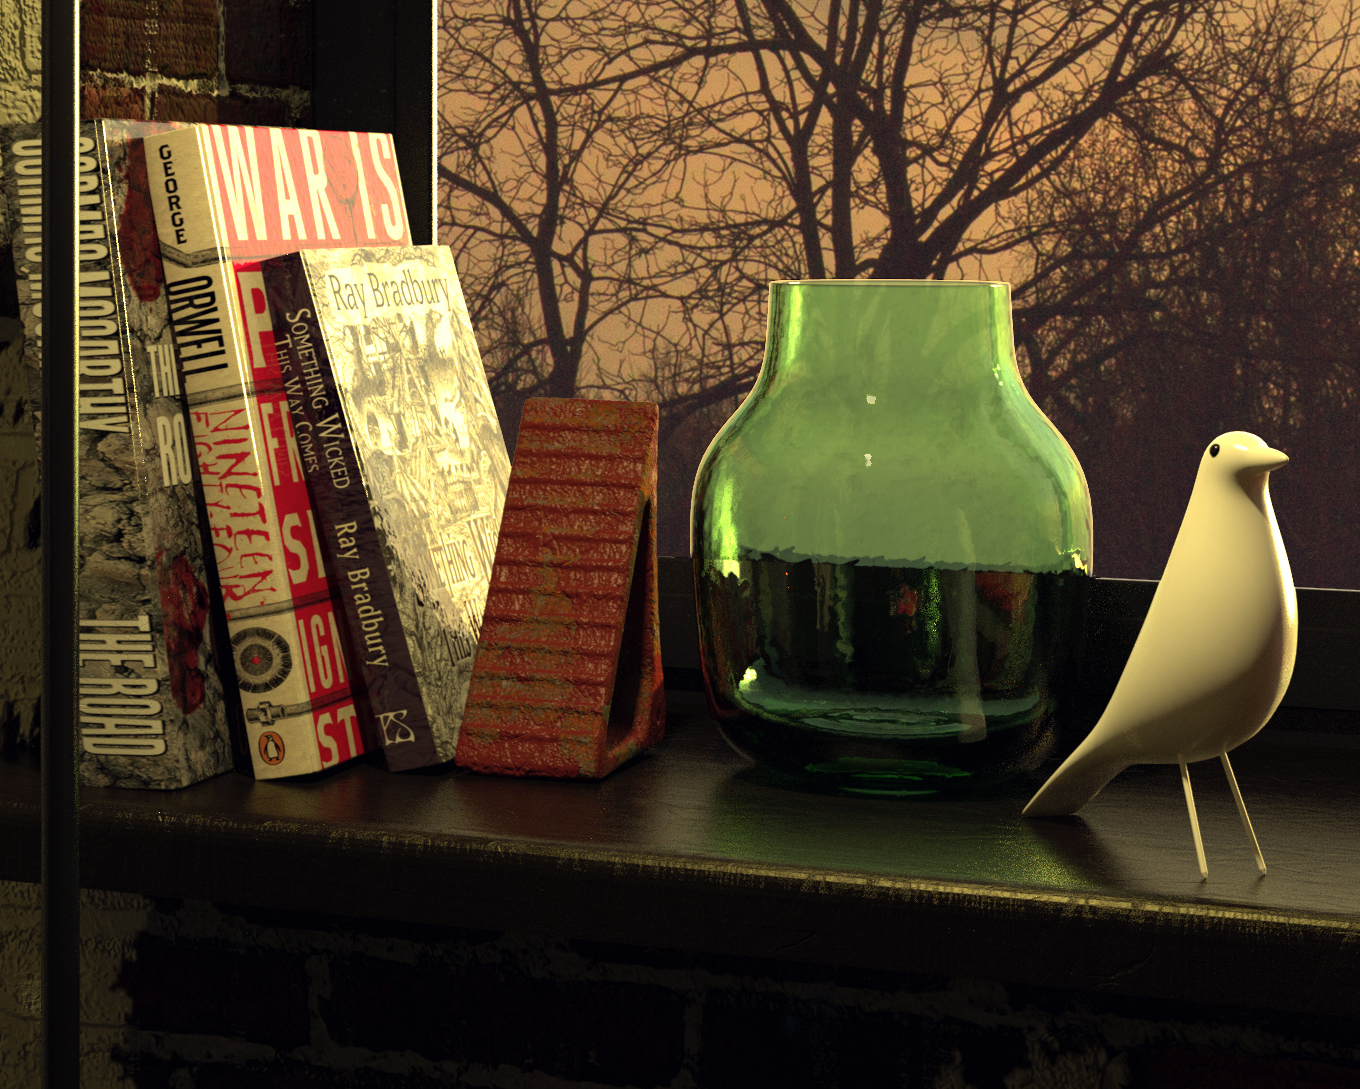 Close-up of windowsill (before I applied Depth of field)